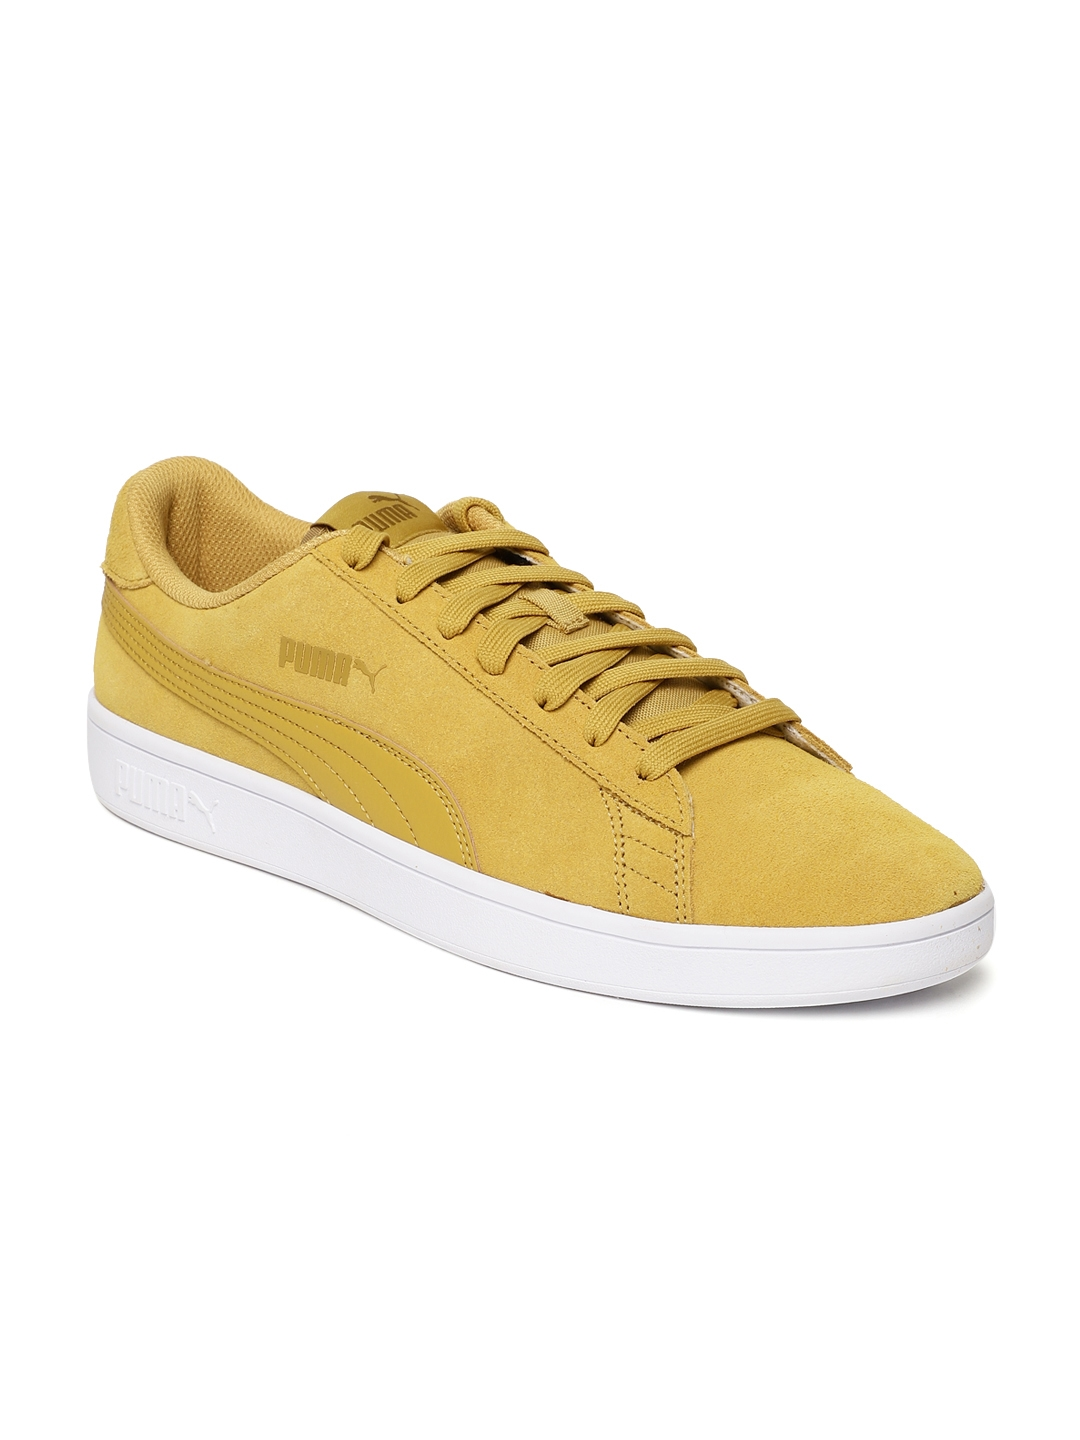 6f0482713435 Buy Puma Men Mustard Yellow Smash V2 Casual Shoes - Casual Shoes for ...